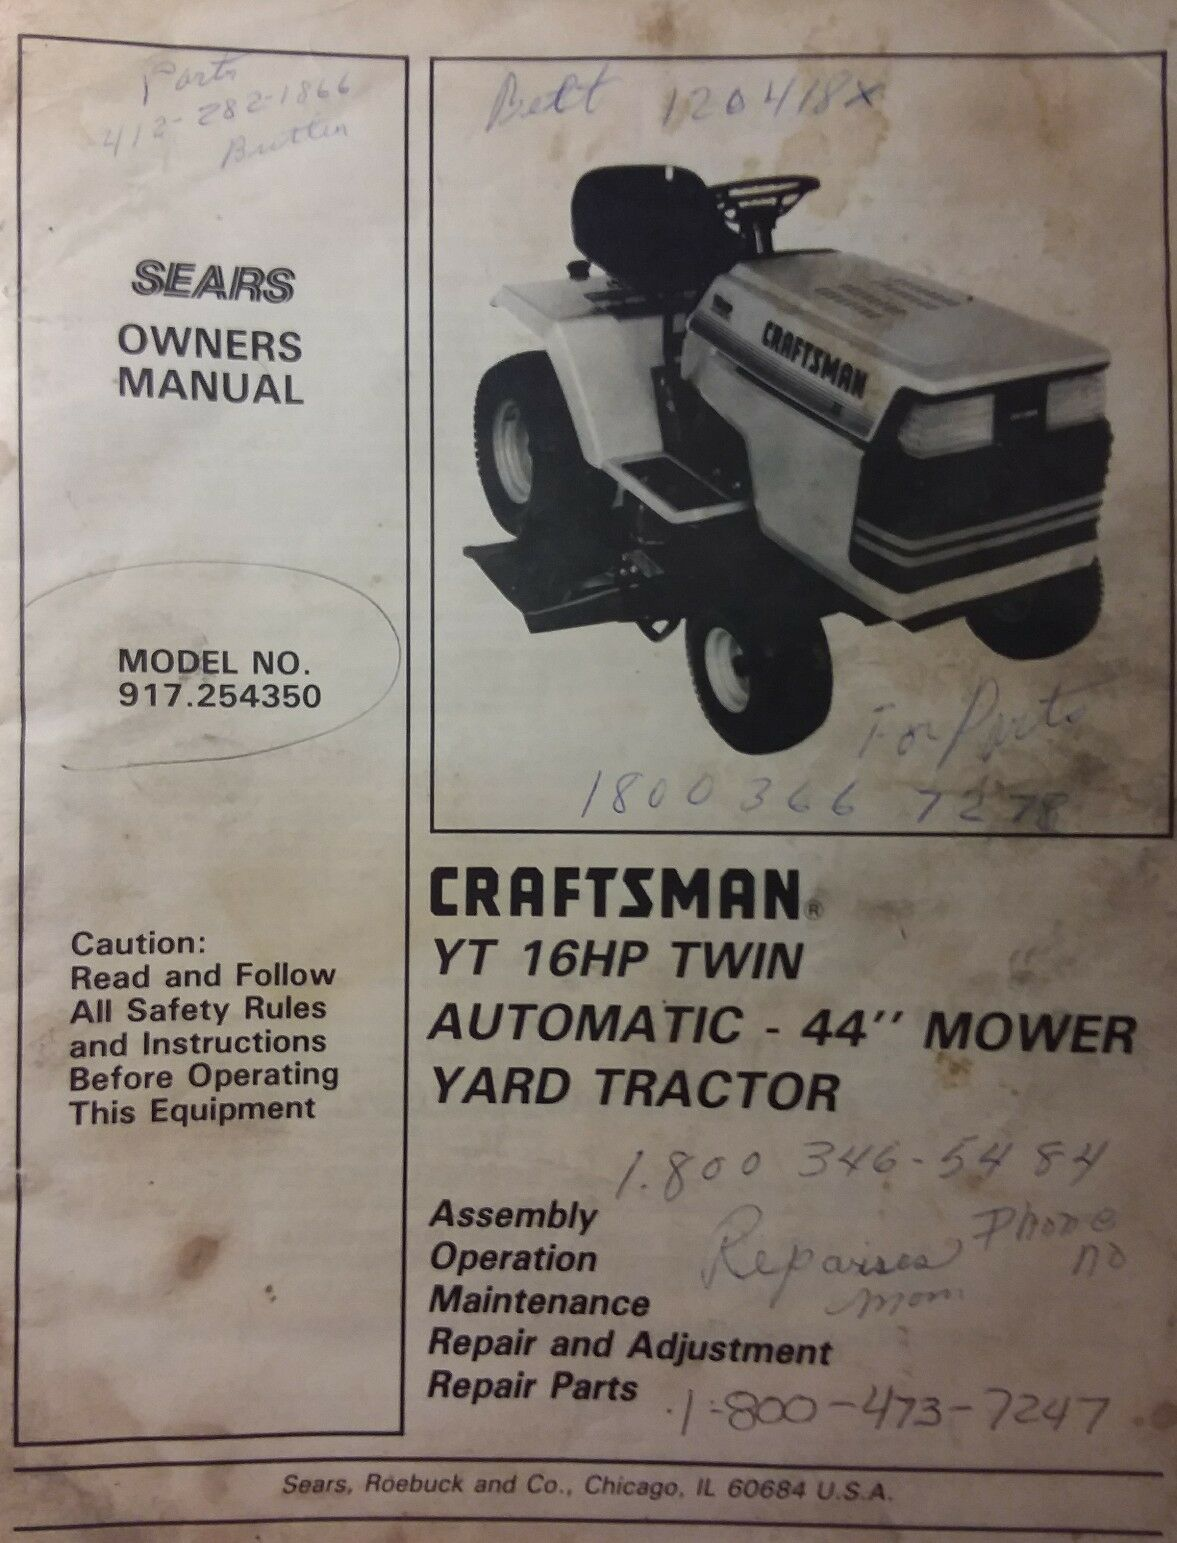 Sears Parts Manuals Lawn Tractors Craftsman Electric 3 In 1 Mower Electrical Schematics Model 900370510 Yt 16 Yard Tractor Owner Manual 917254350 Of